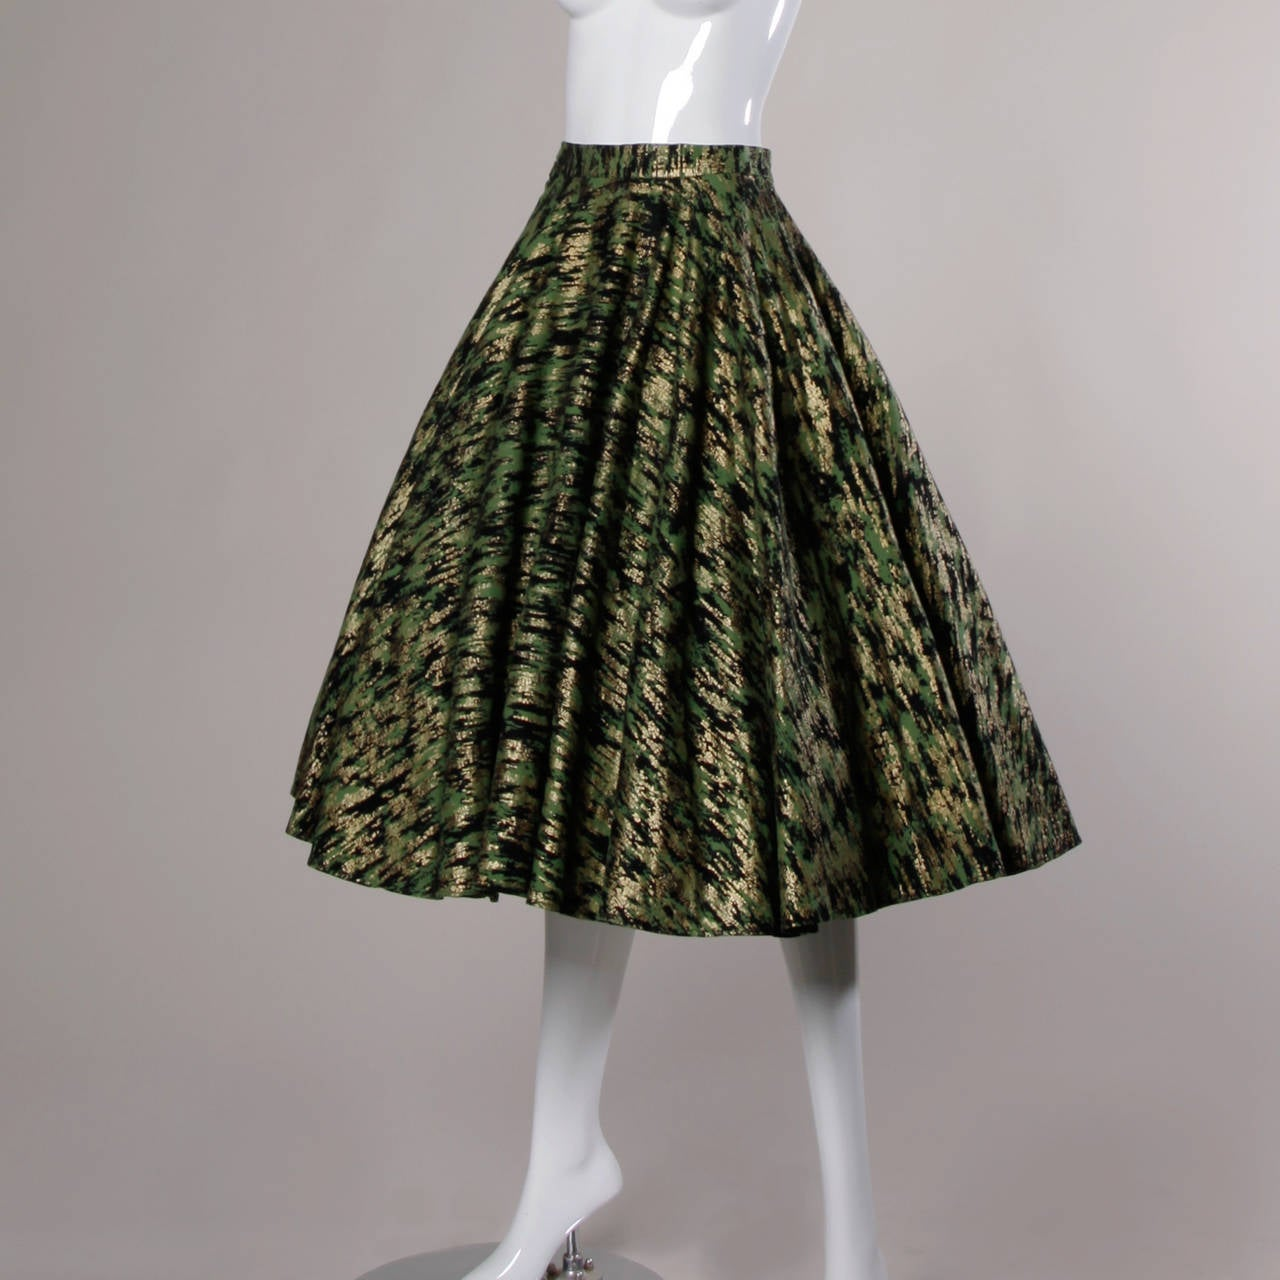 1950s Vintage Metallic Gold + Green Hand Screenprint Swing Skirt 5